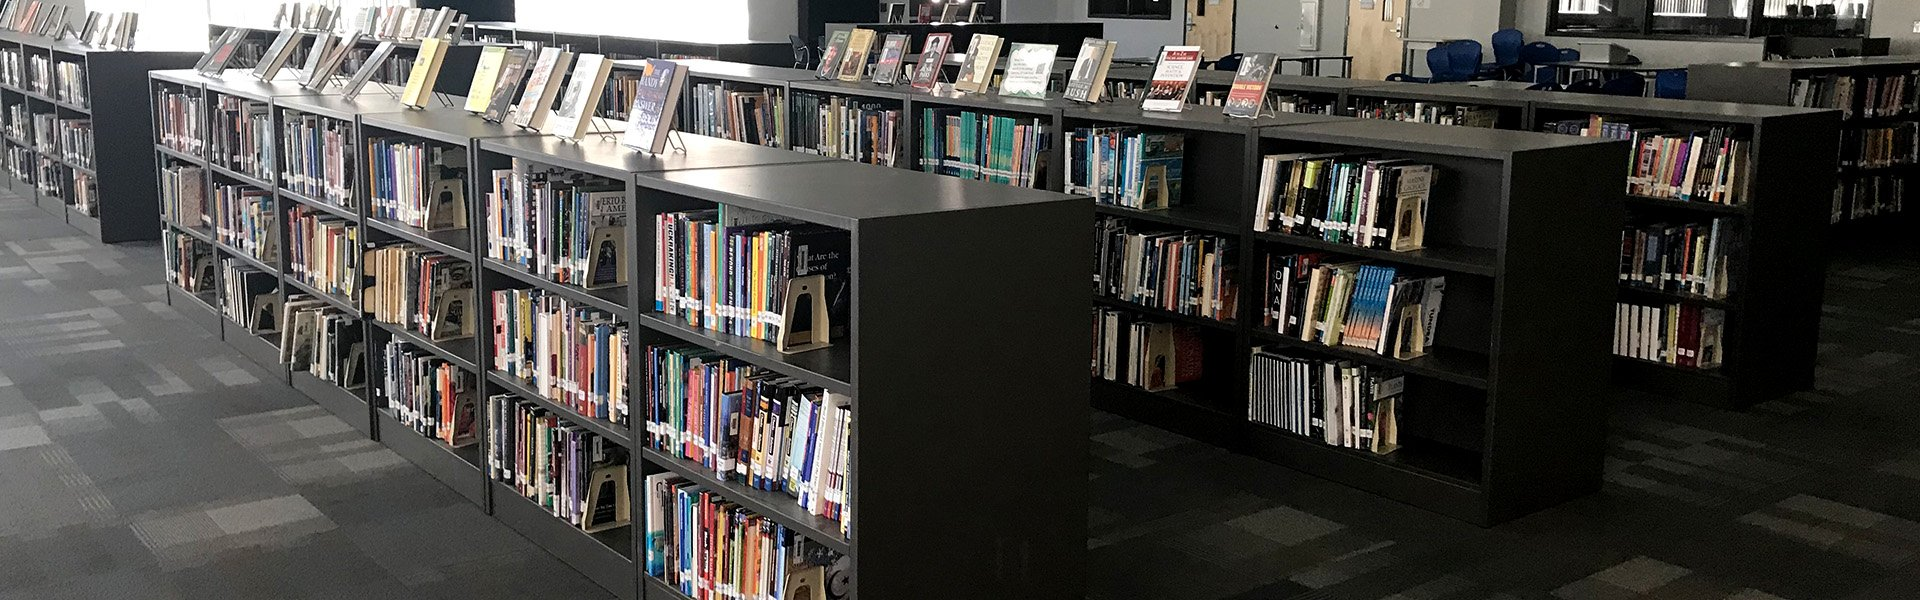 Media Center Bookcases 300